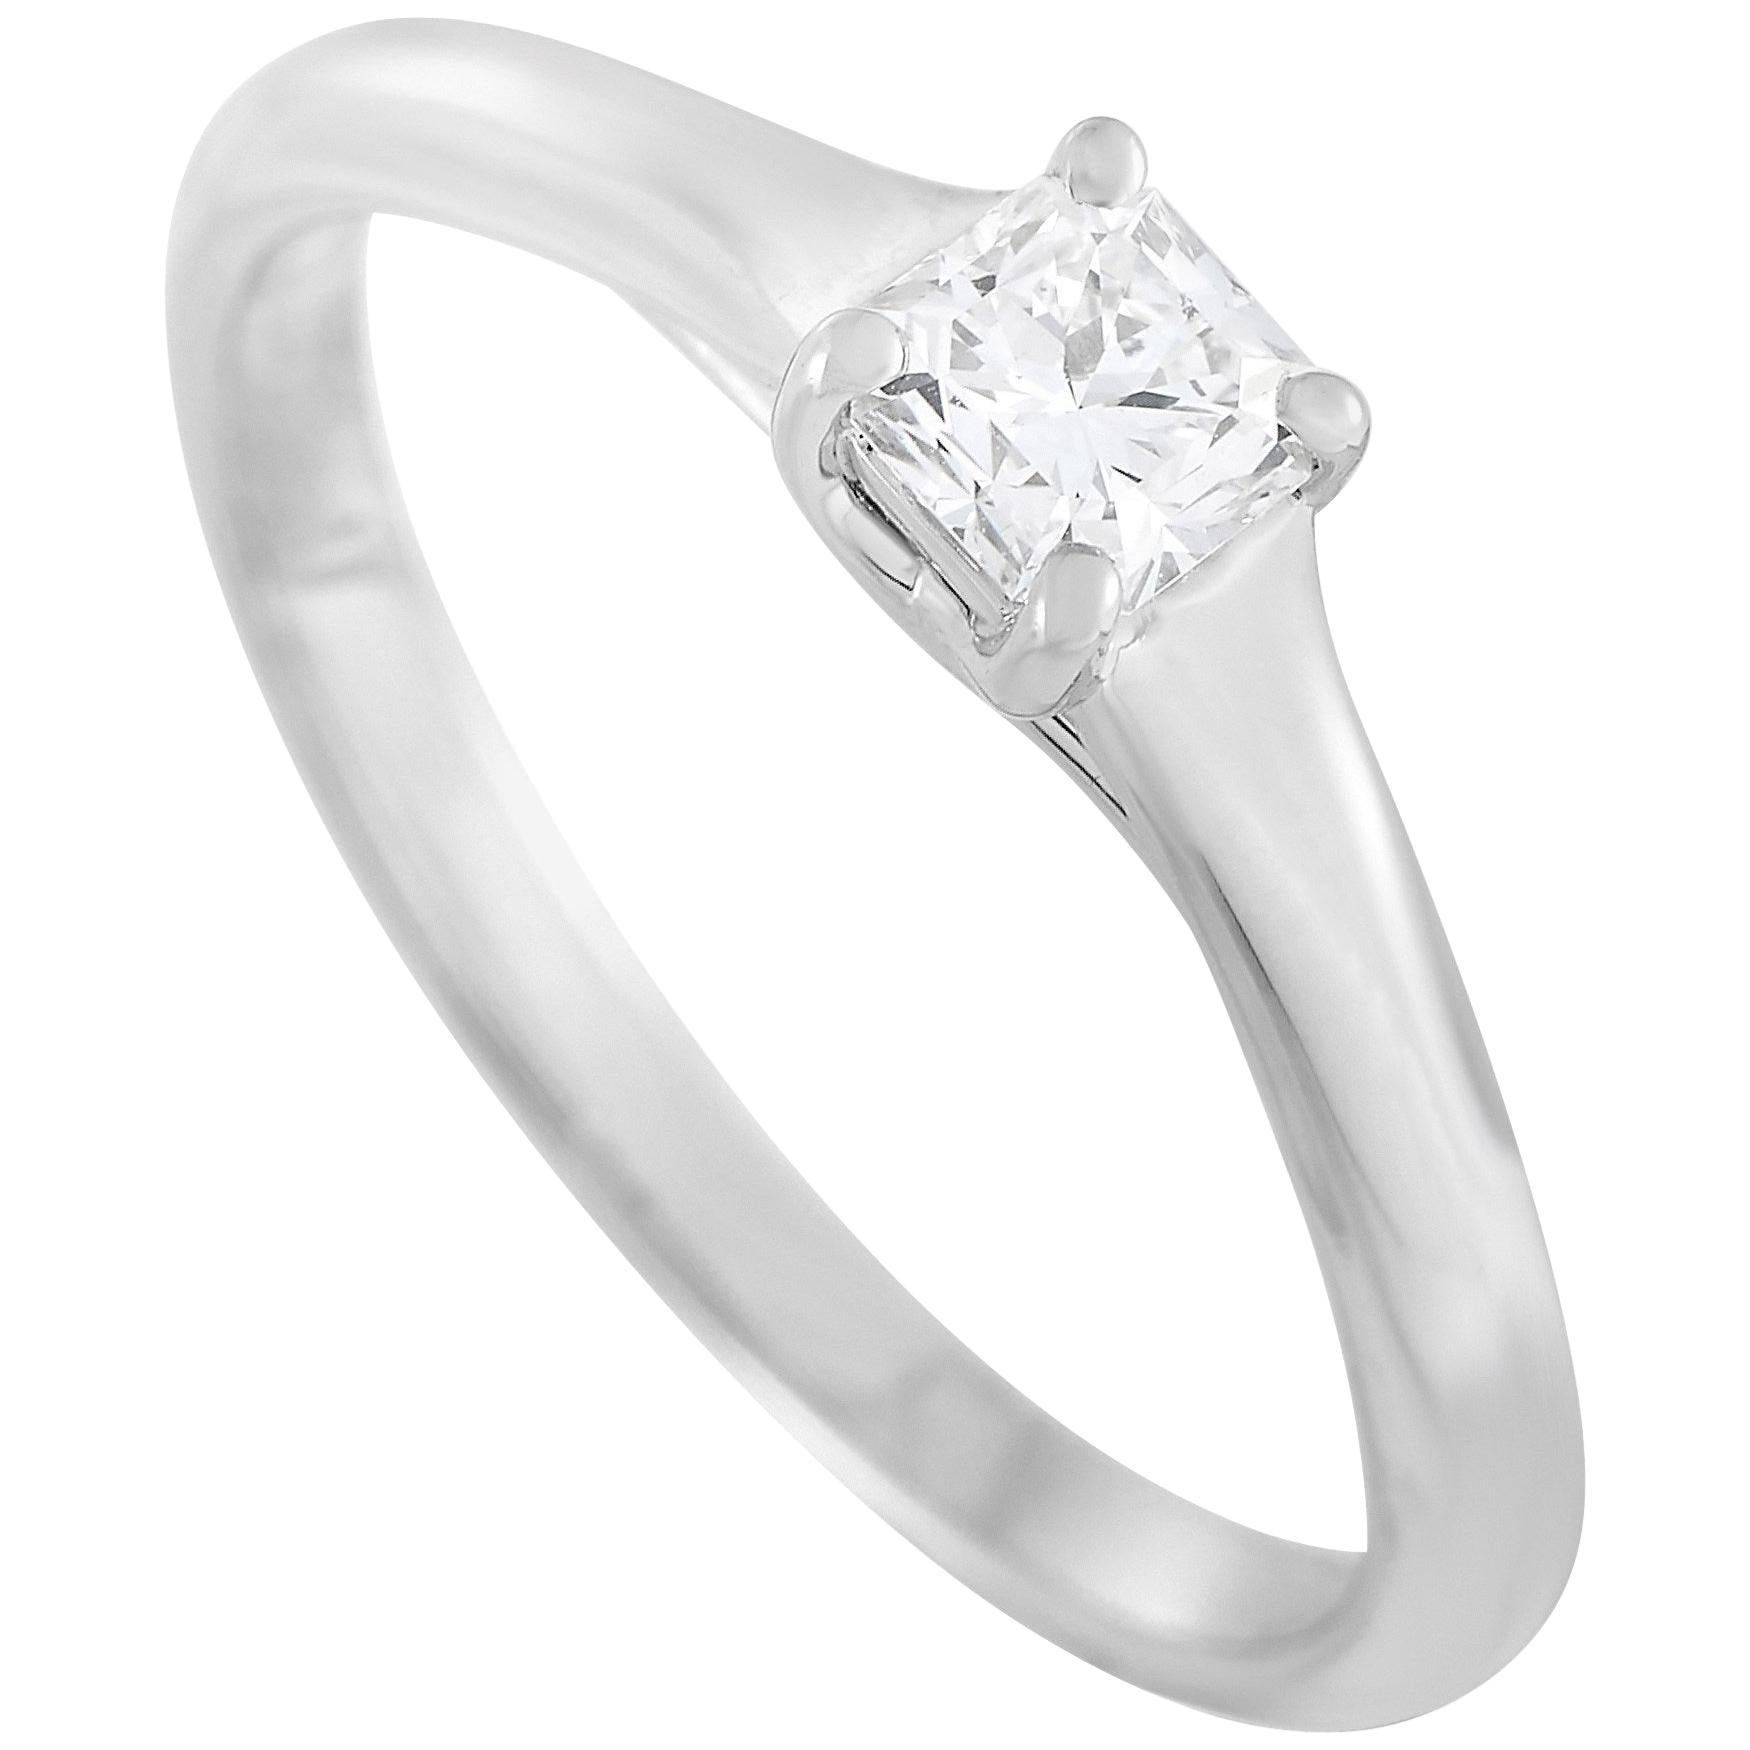 Tiffany & Co. Platinum 0.29 Carat Lucida Diamond Engagement Ring